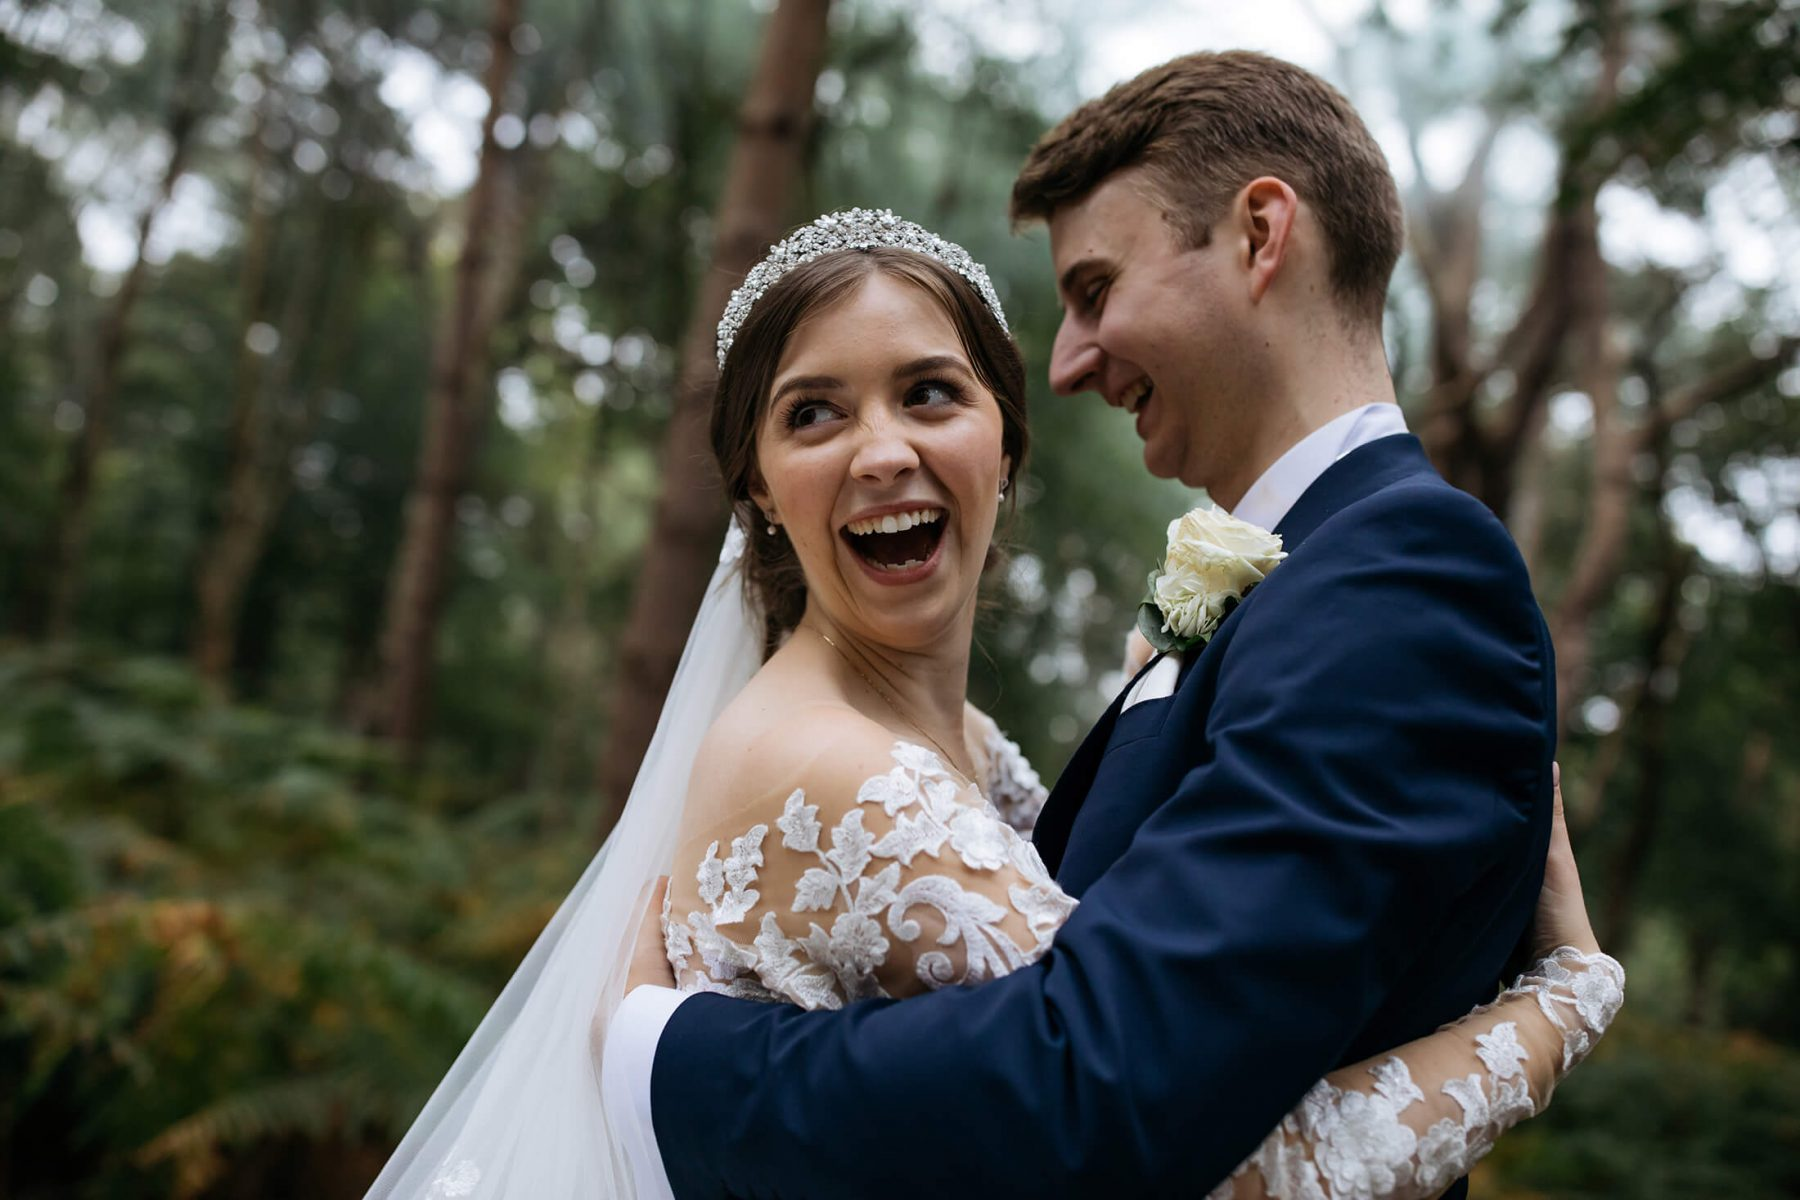 A bride and groom smile for a wedding portrait